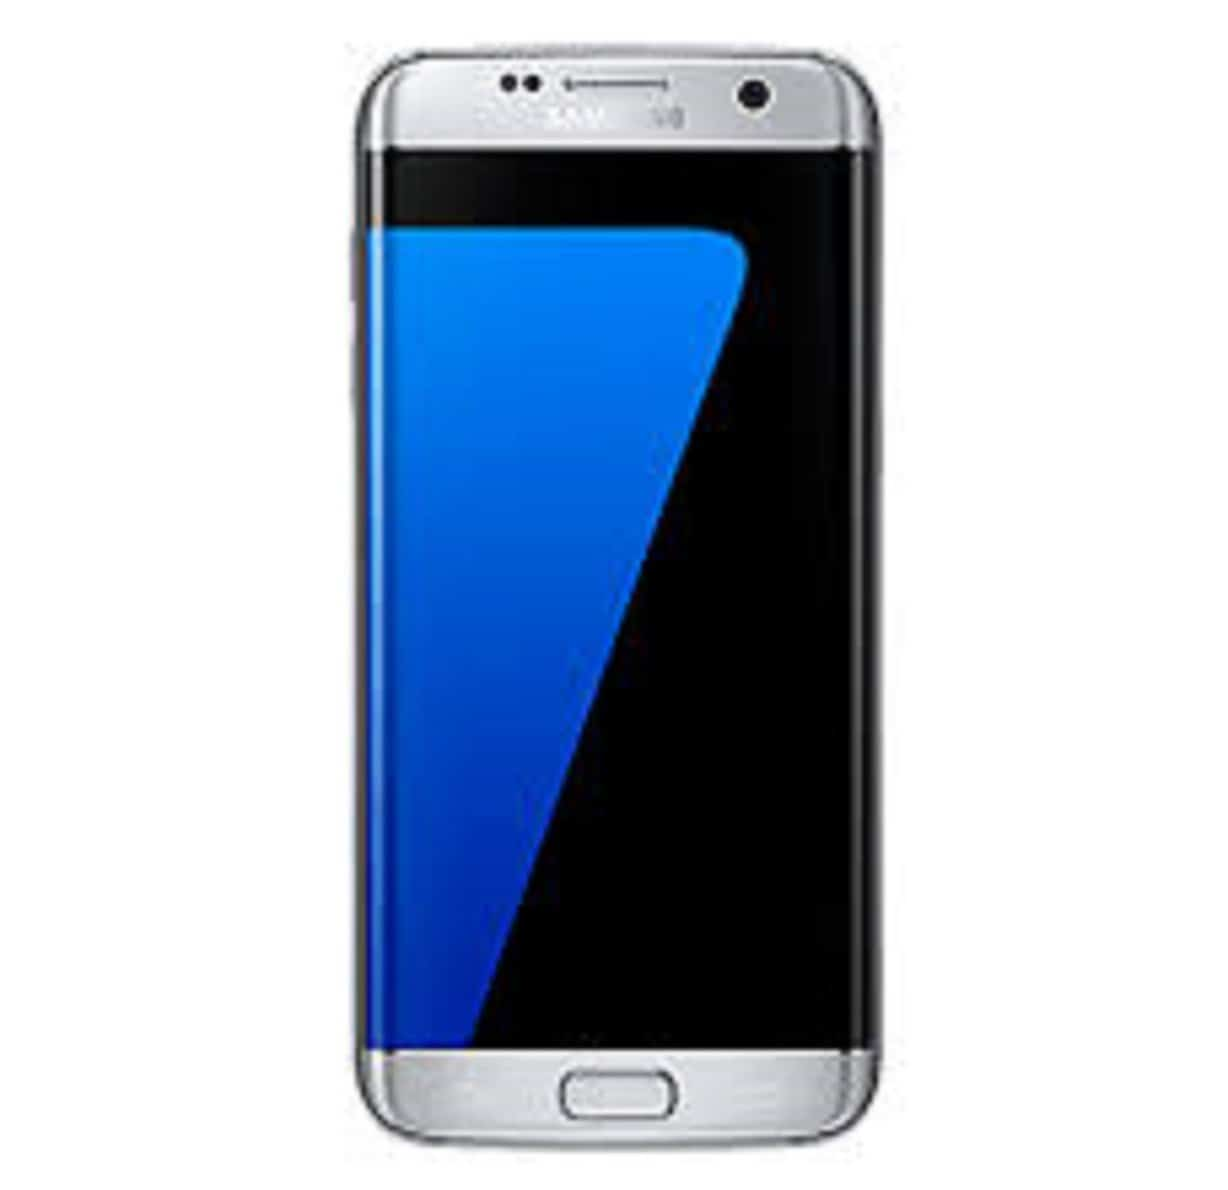 samsung galaxy s7 edge screen repair original samsung part. Black Bedroom Furniture Sets. Home Design Ideas